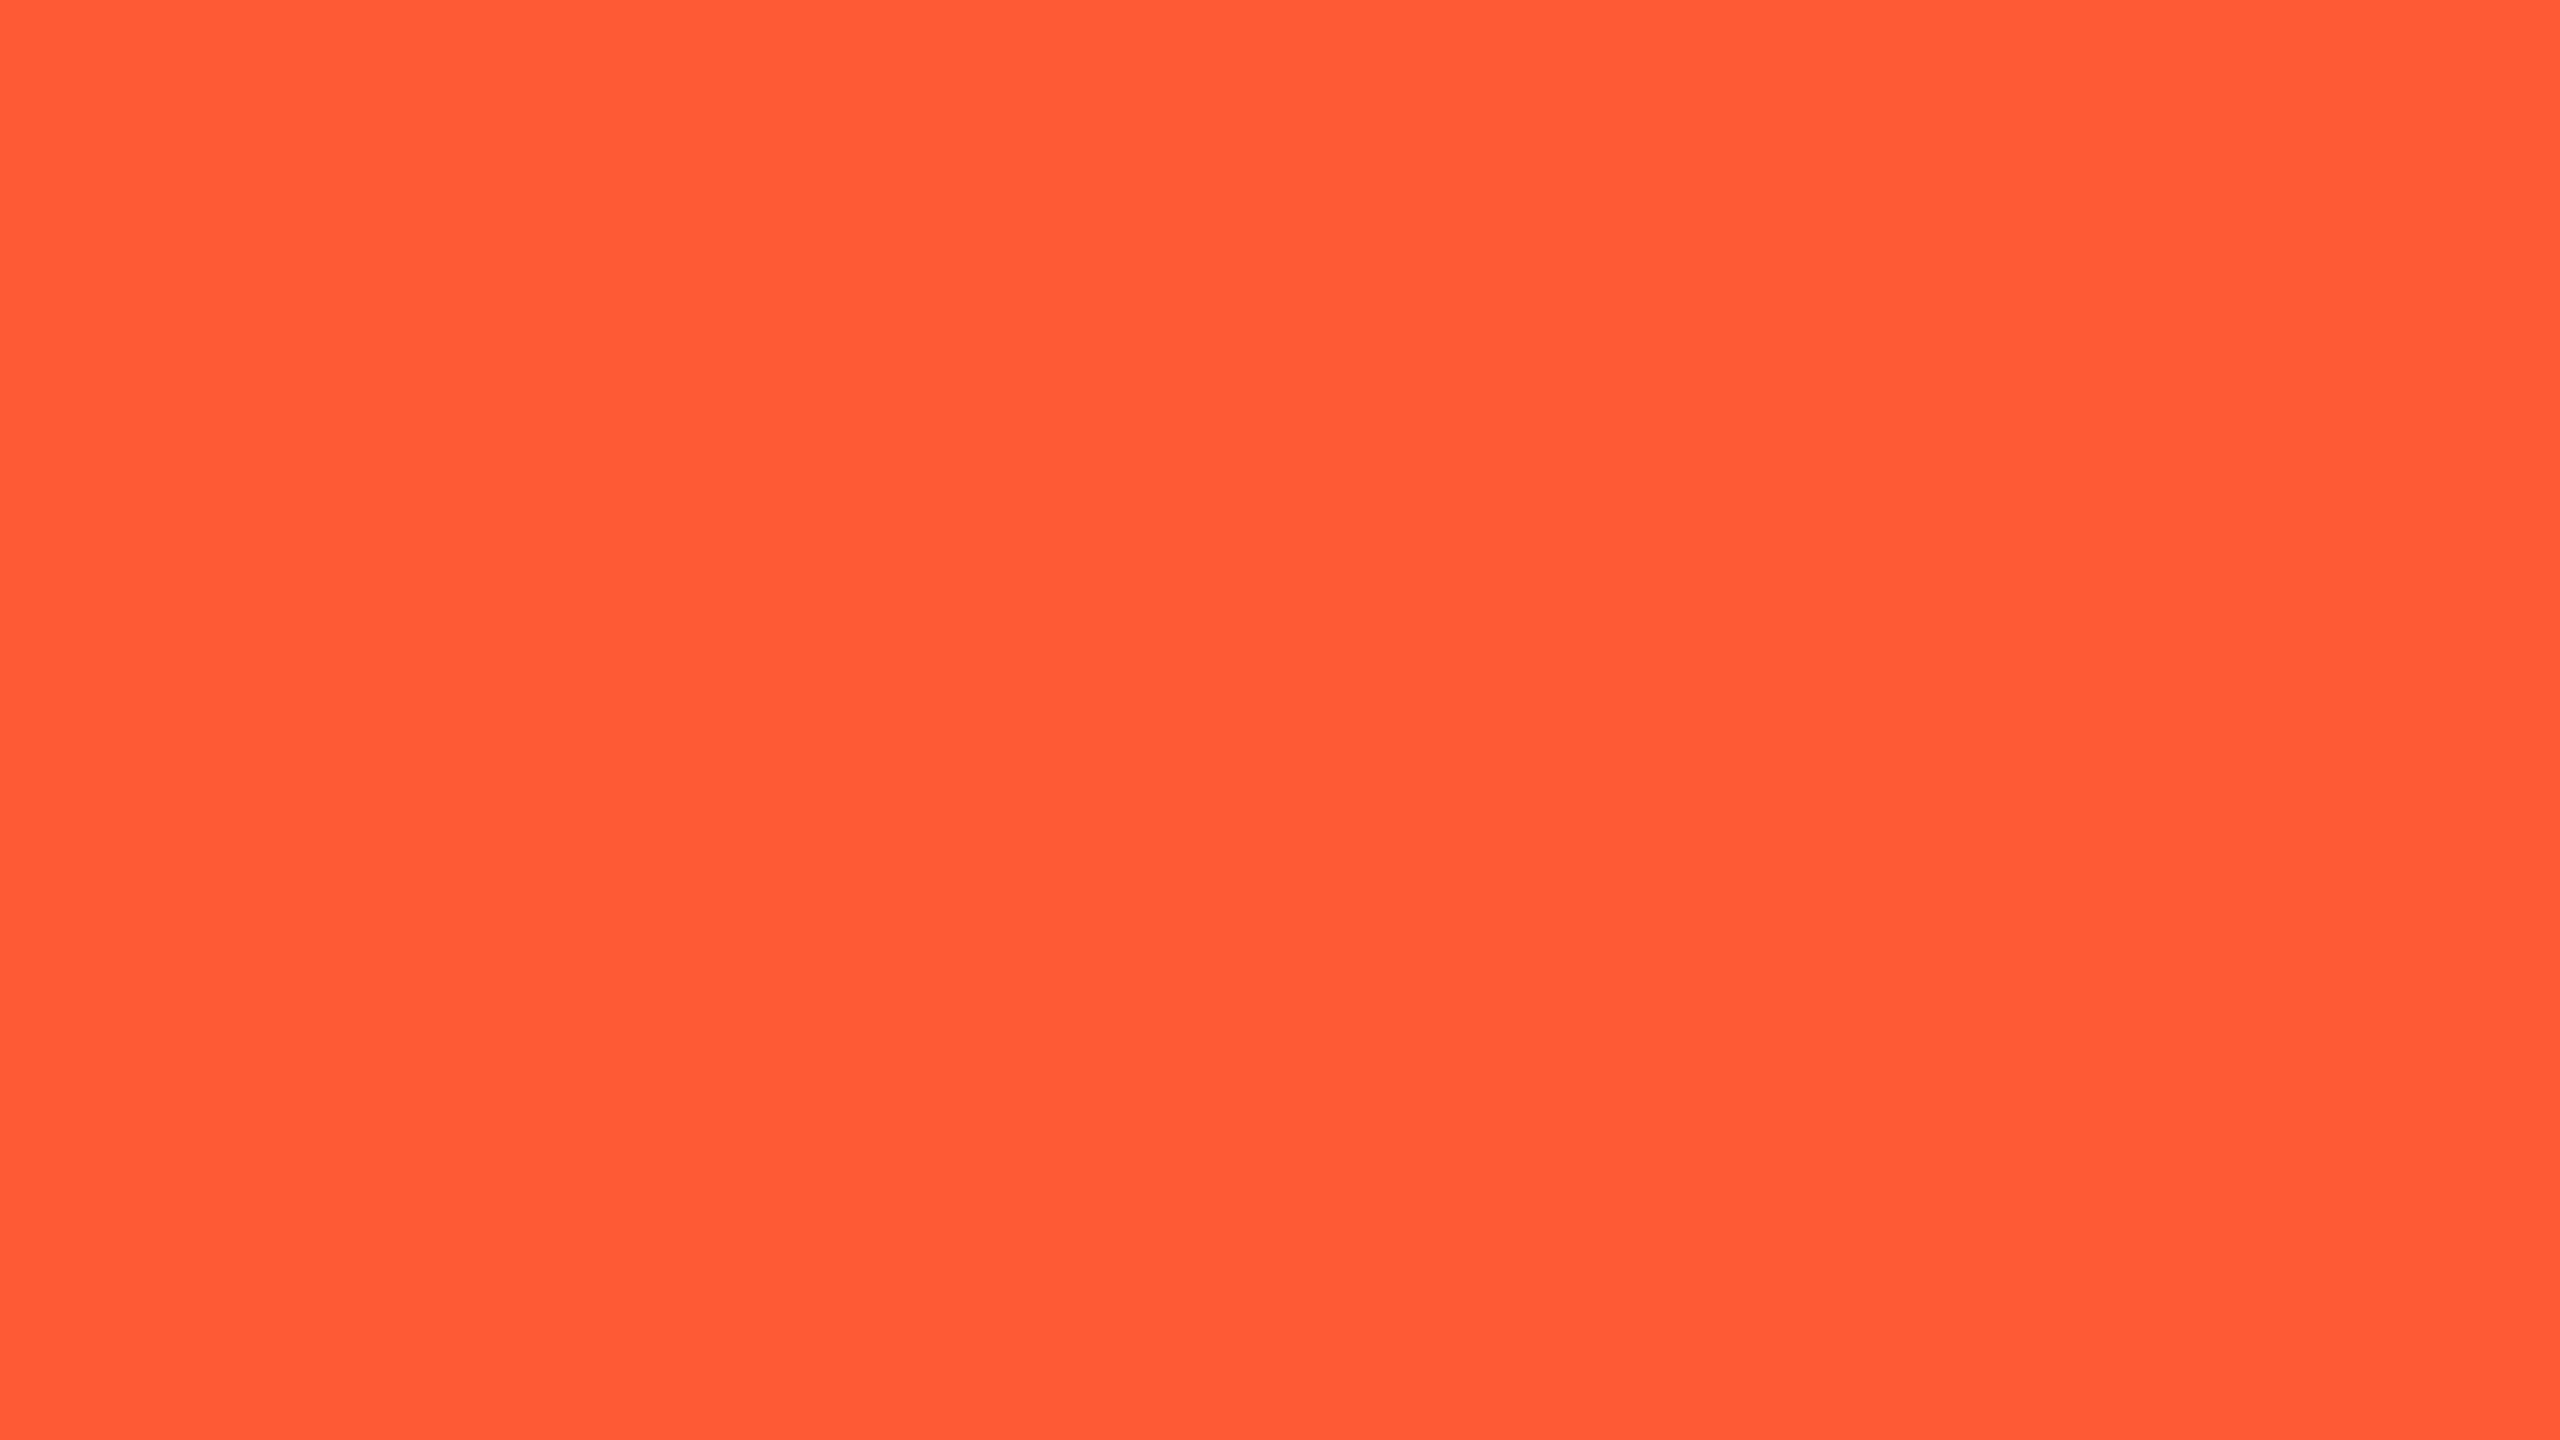 2560x1440 Portland Orange Solid Color Background